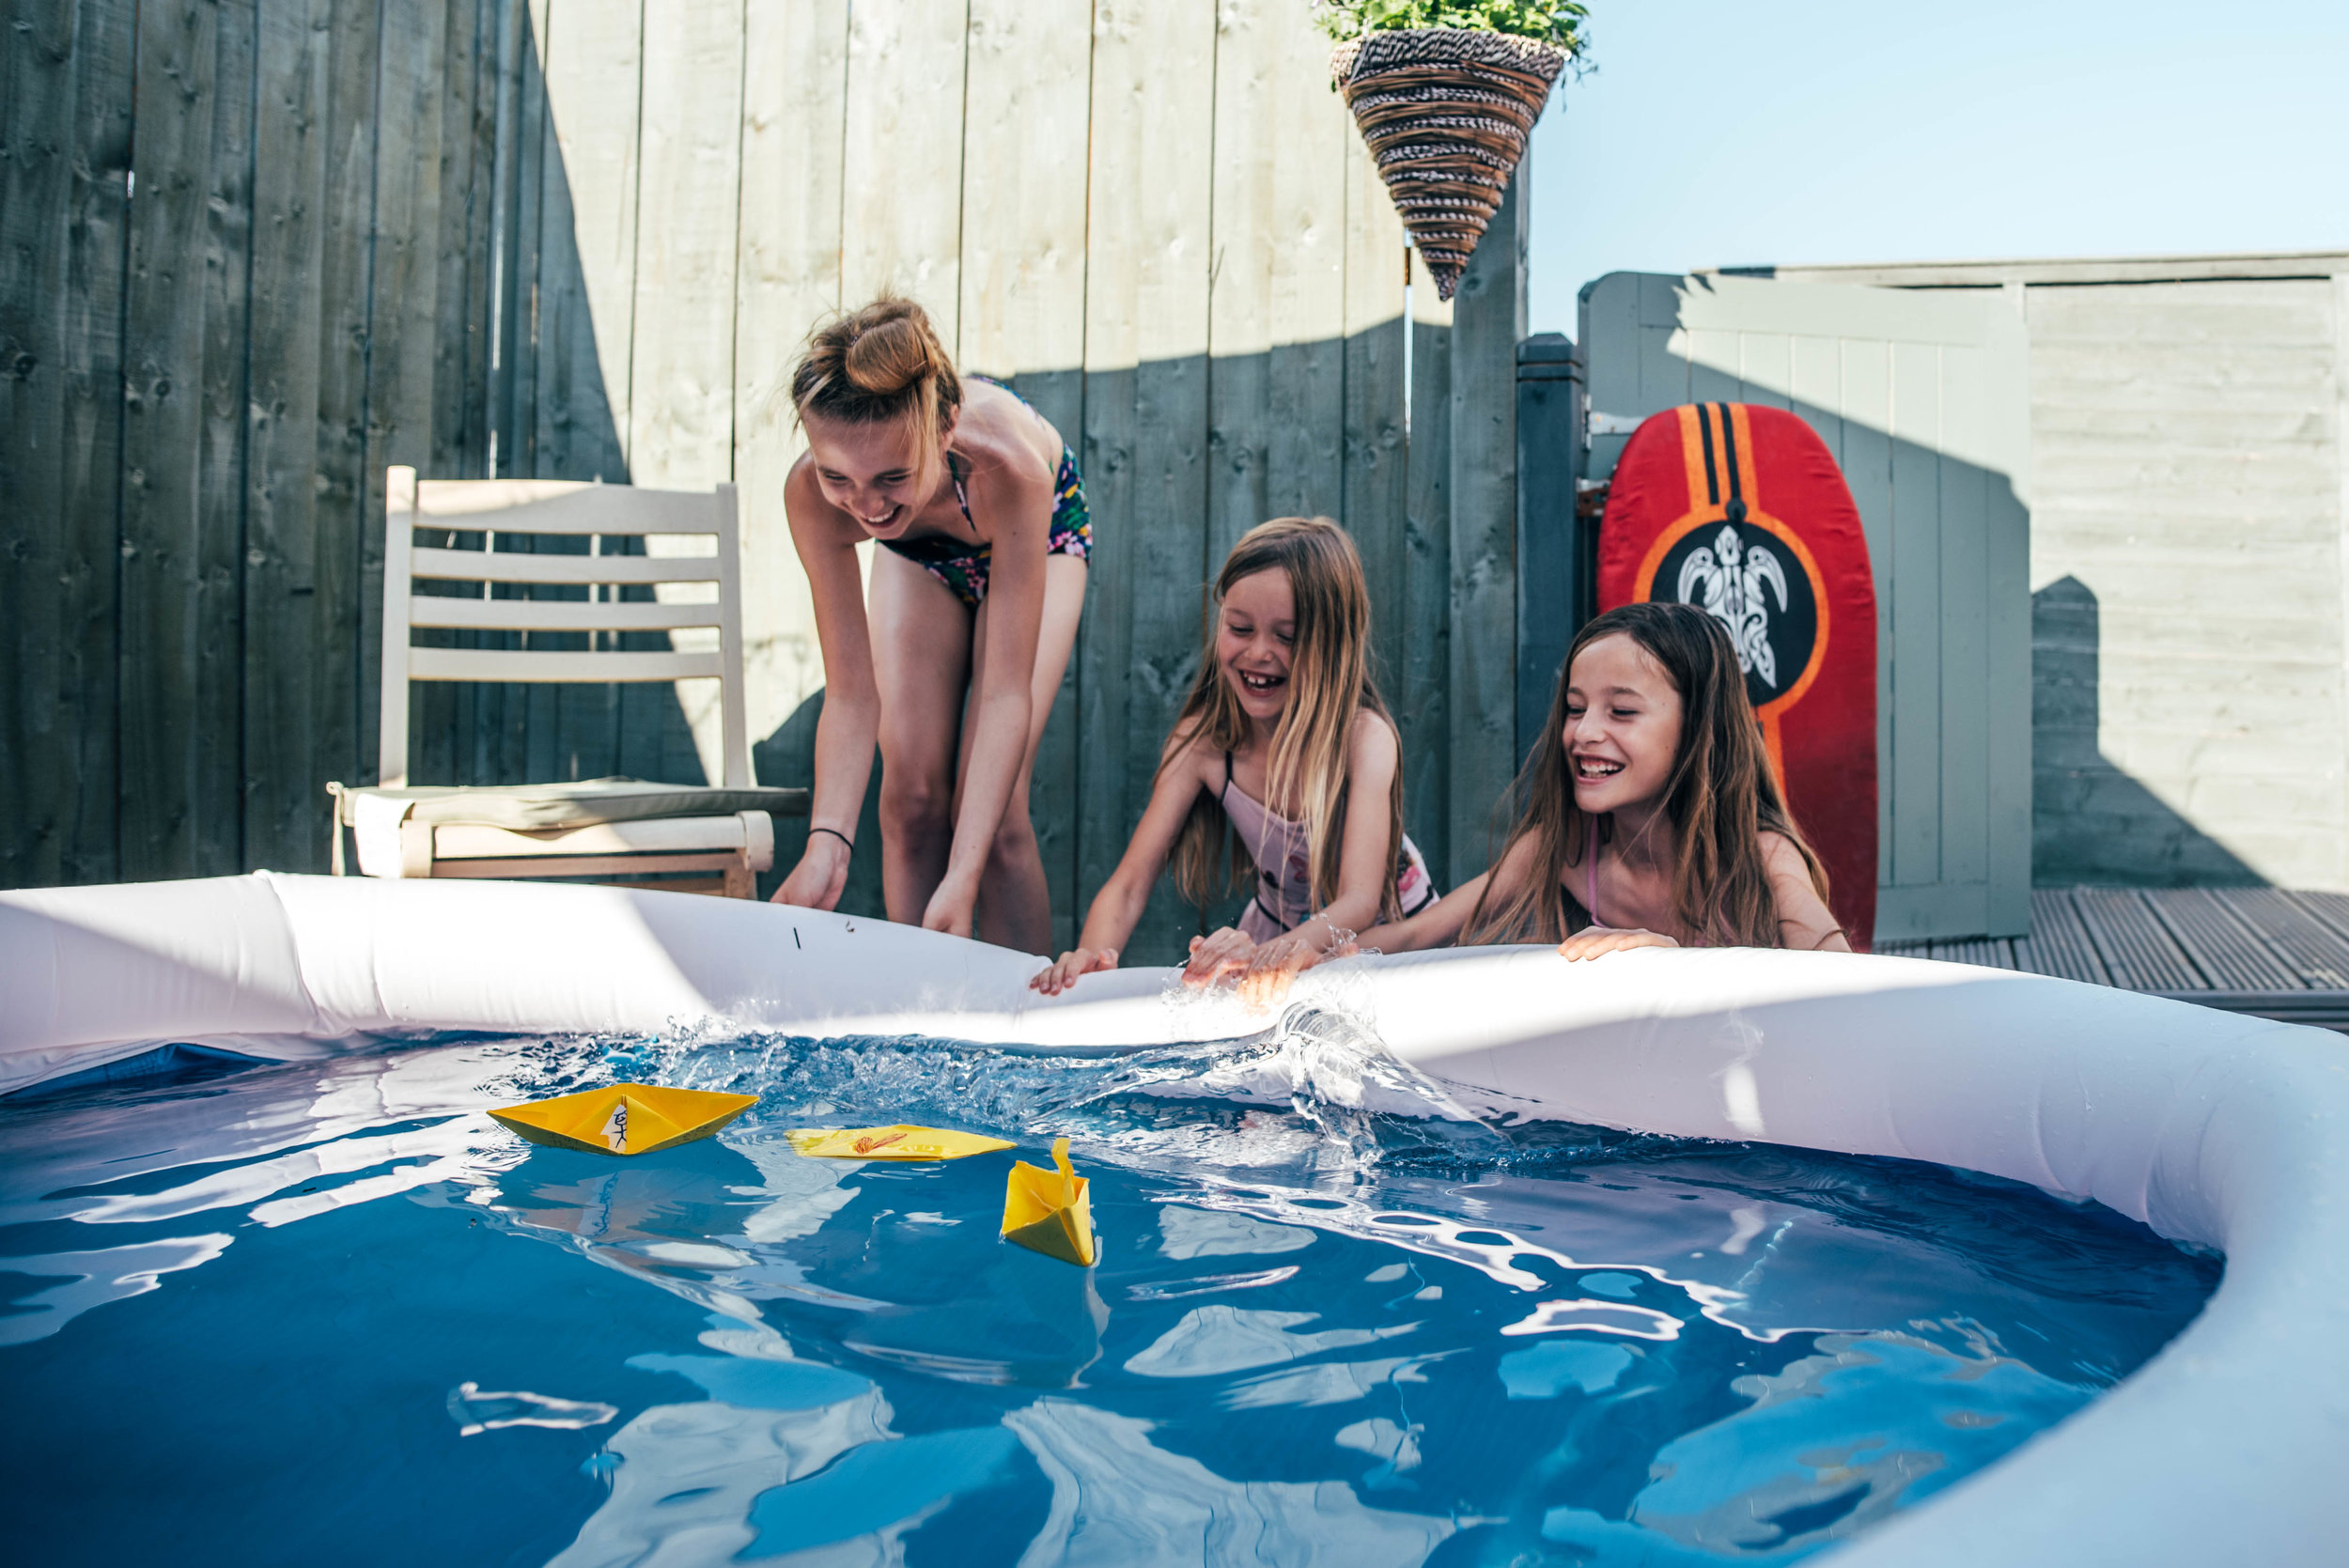 Three girls race paper boats in pool Essex UK Documentary Portrait photographer